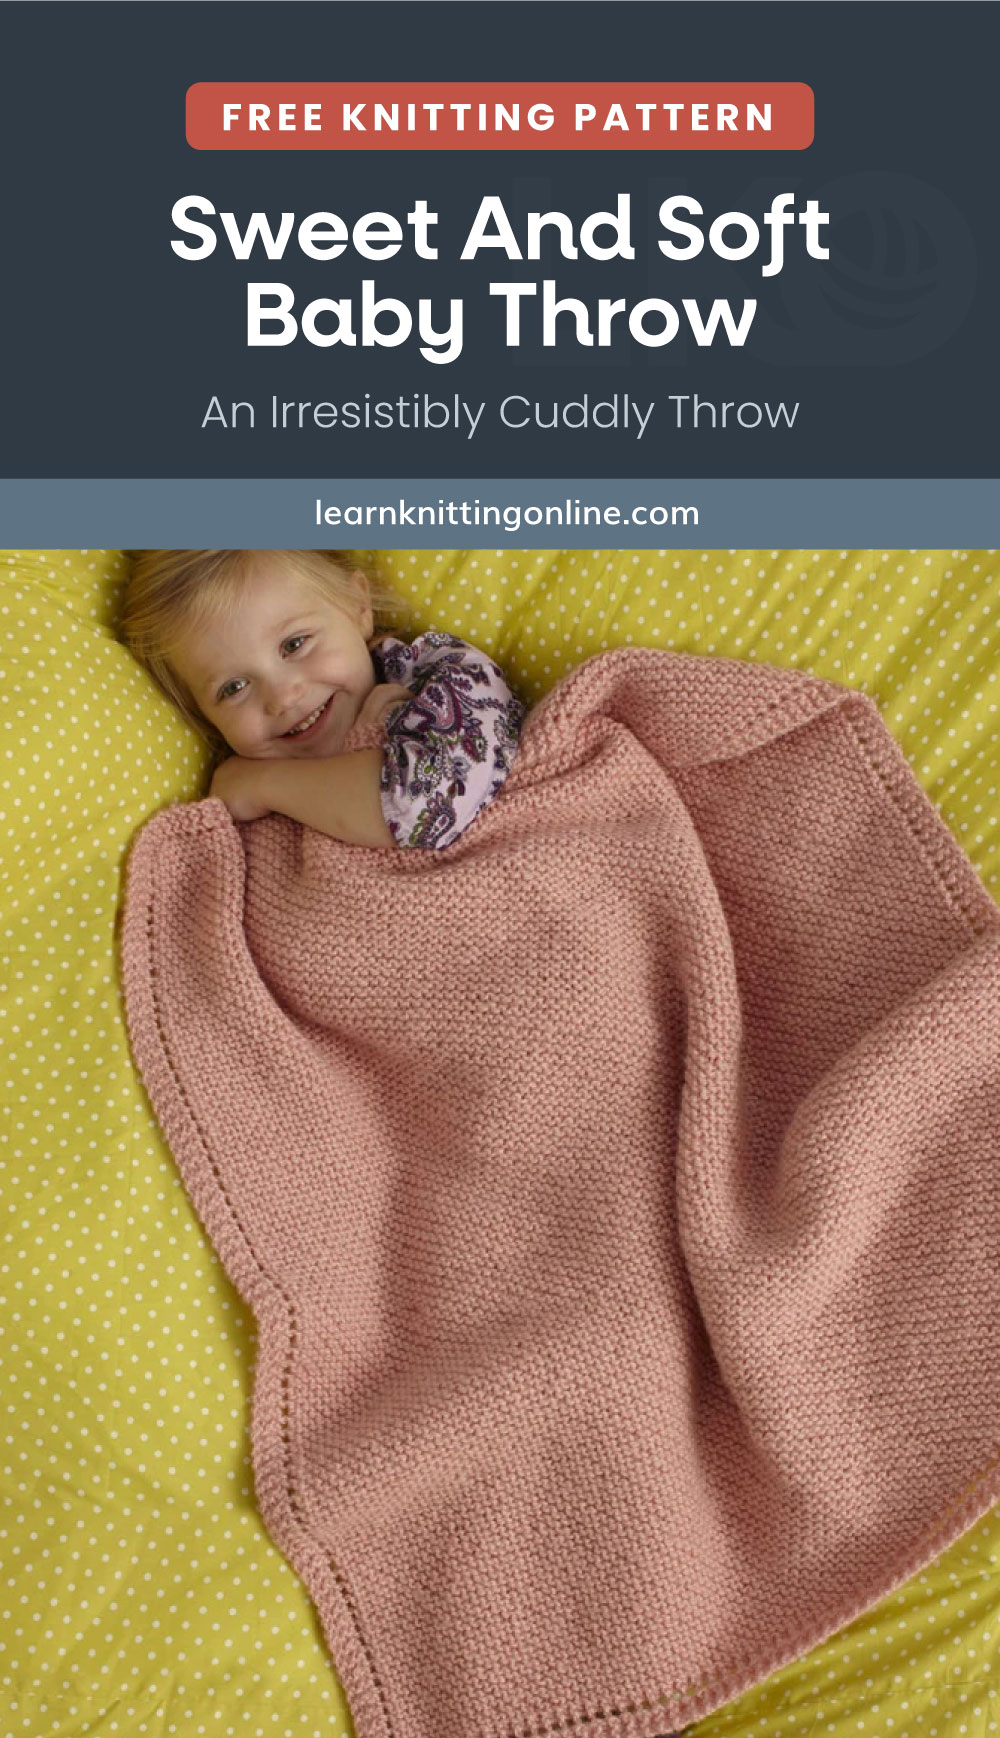 """Text area which says """"Free Knitting Pattern: Sweet And Soft Baby Throw – An Irresistibly Cuddly Throw, learnknittingonline.com"""" followed by a little girl draped with an orange knitted throw while lying down"""